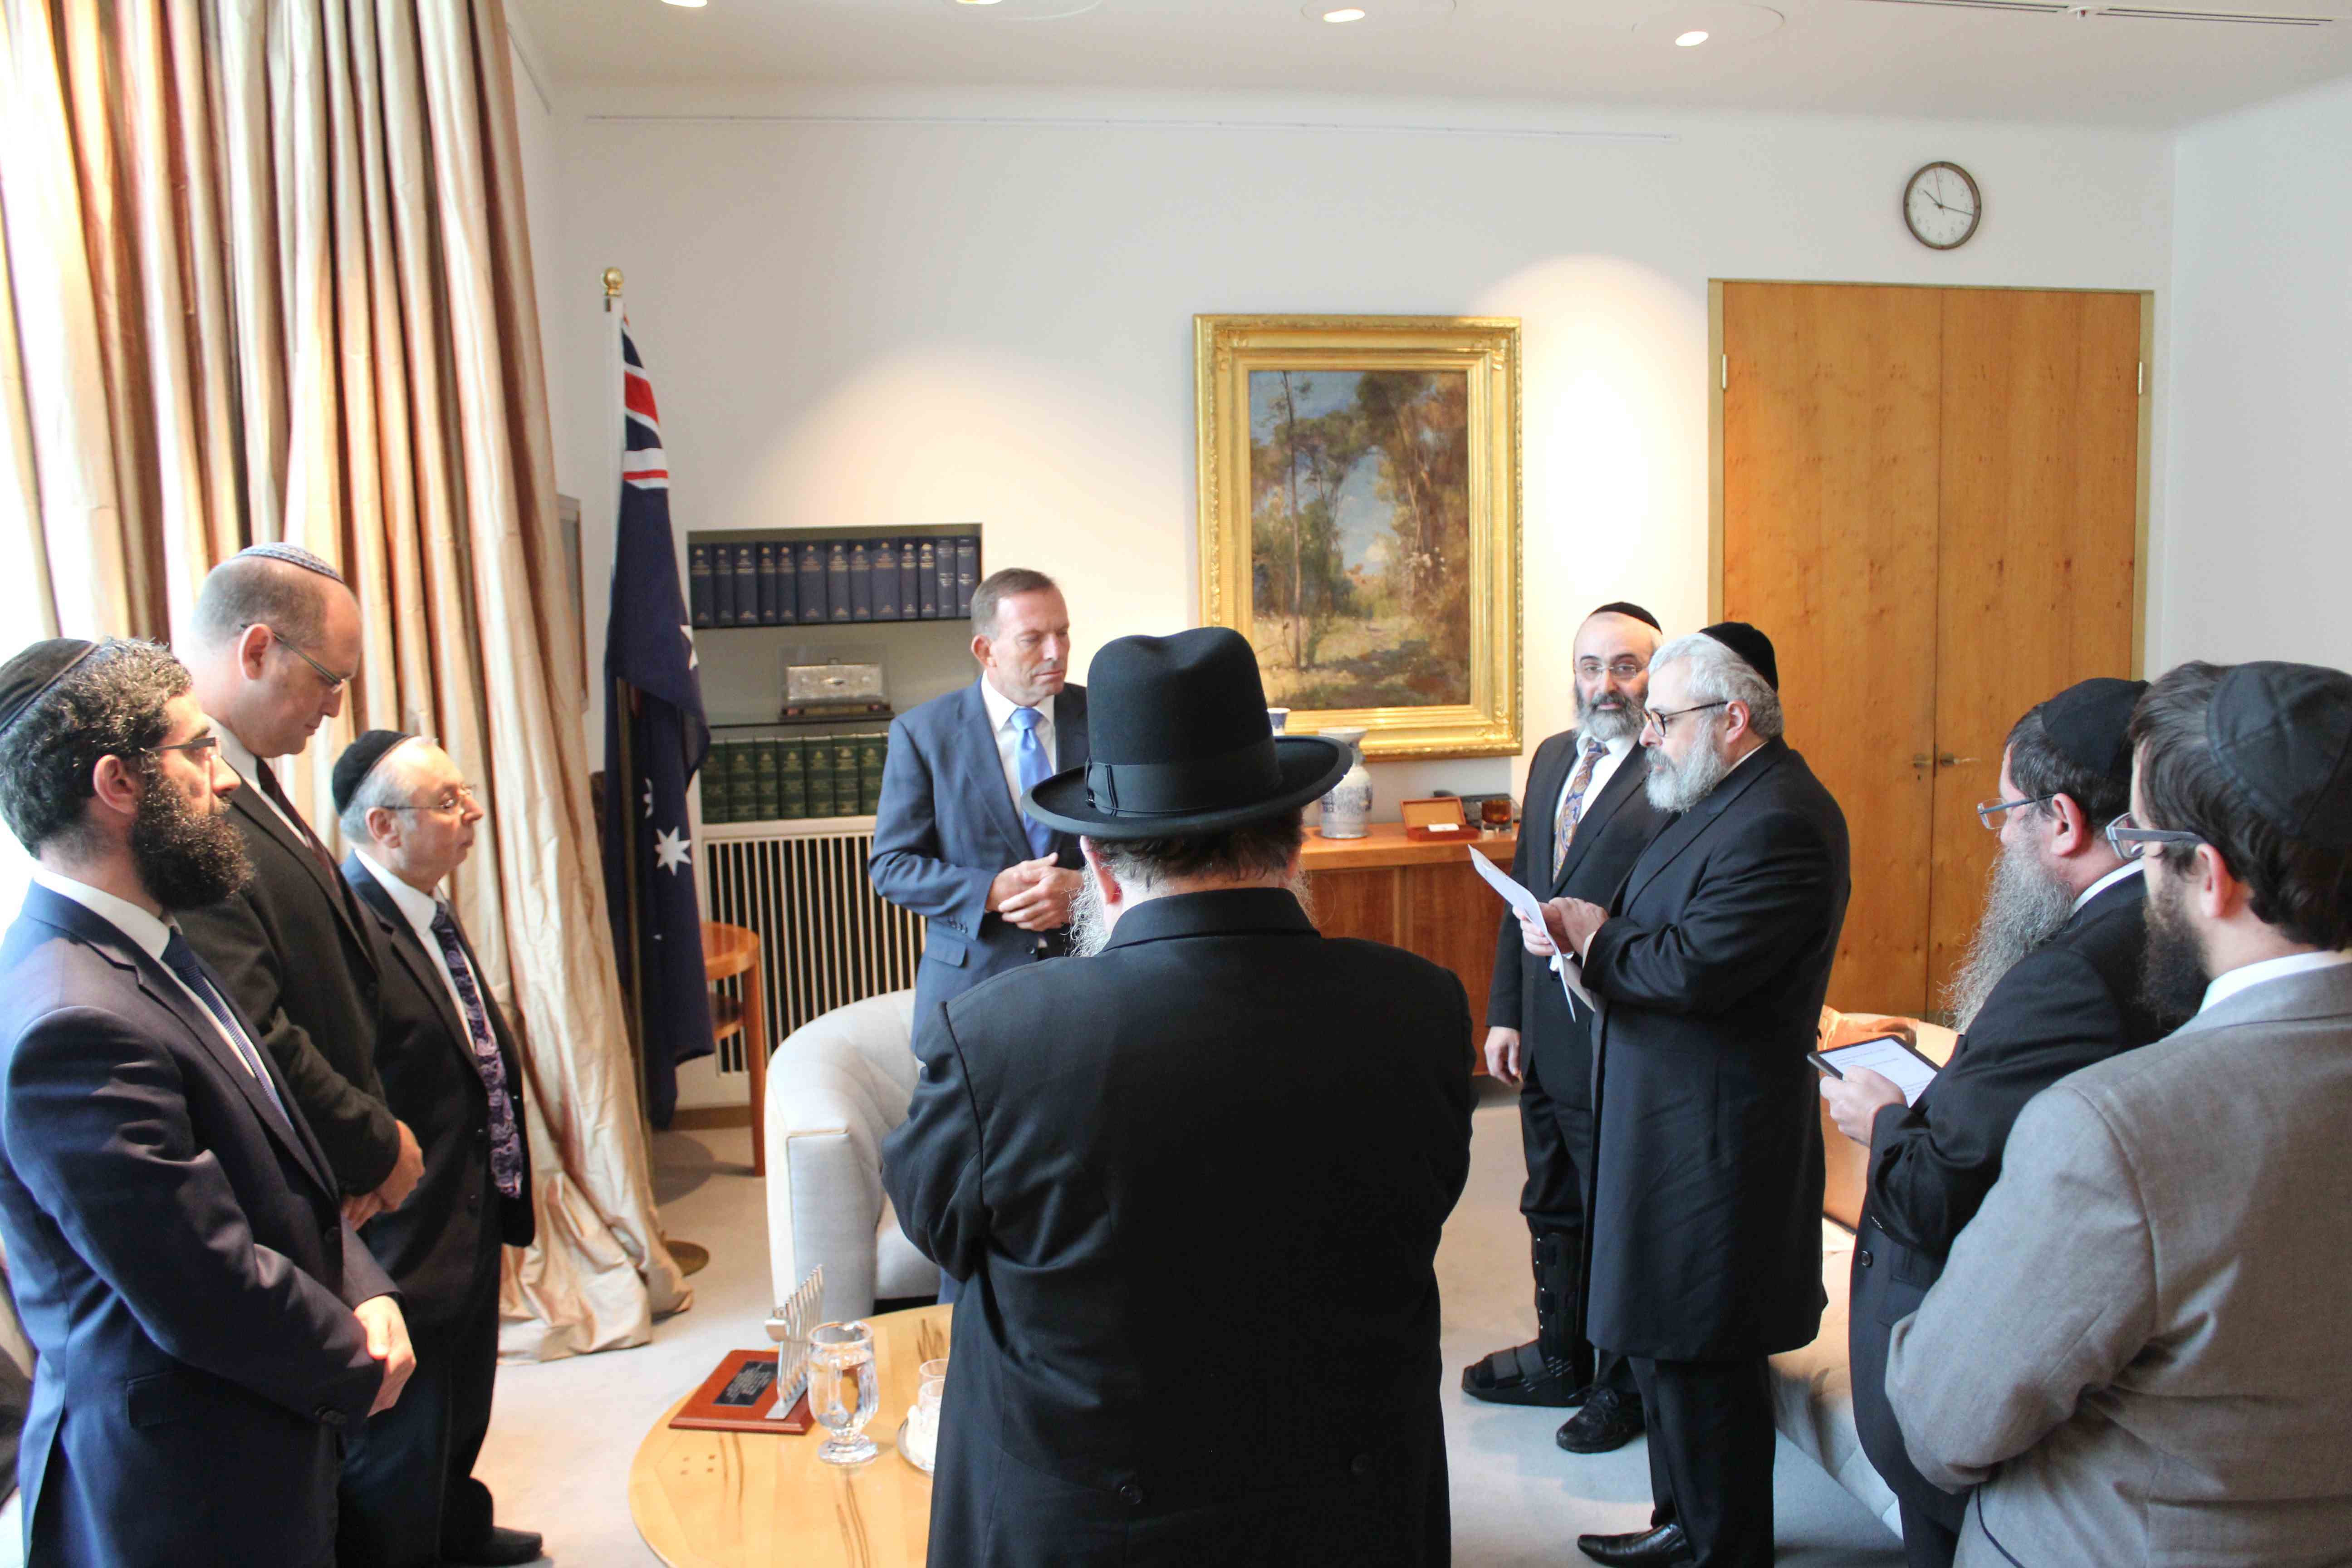 Rabbis Praying with PM copy.jpg